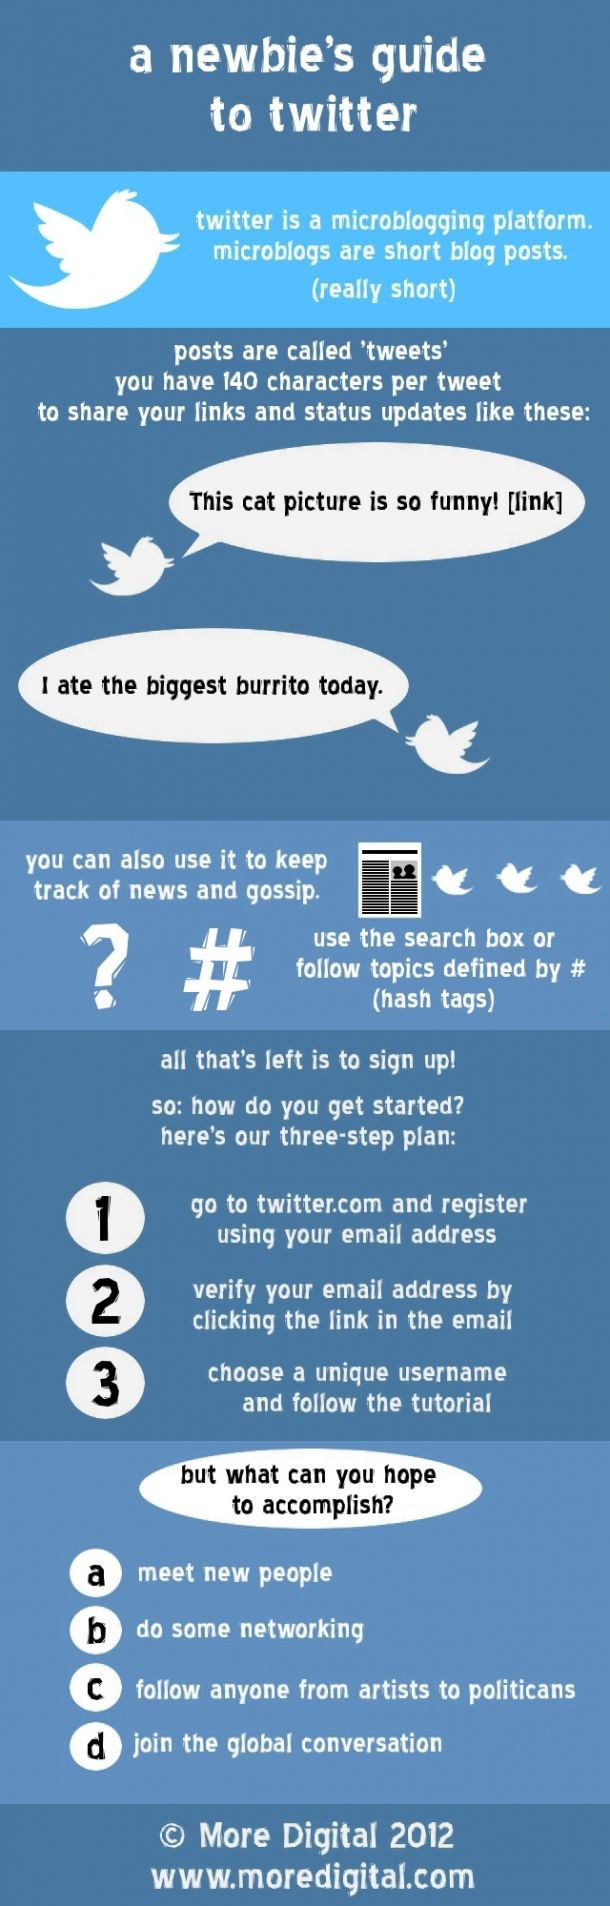 A Newbie's Guide To Twitter